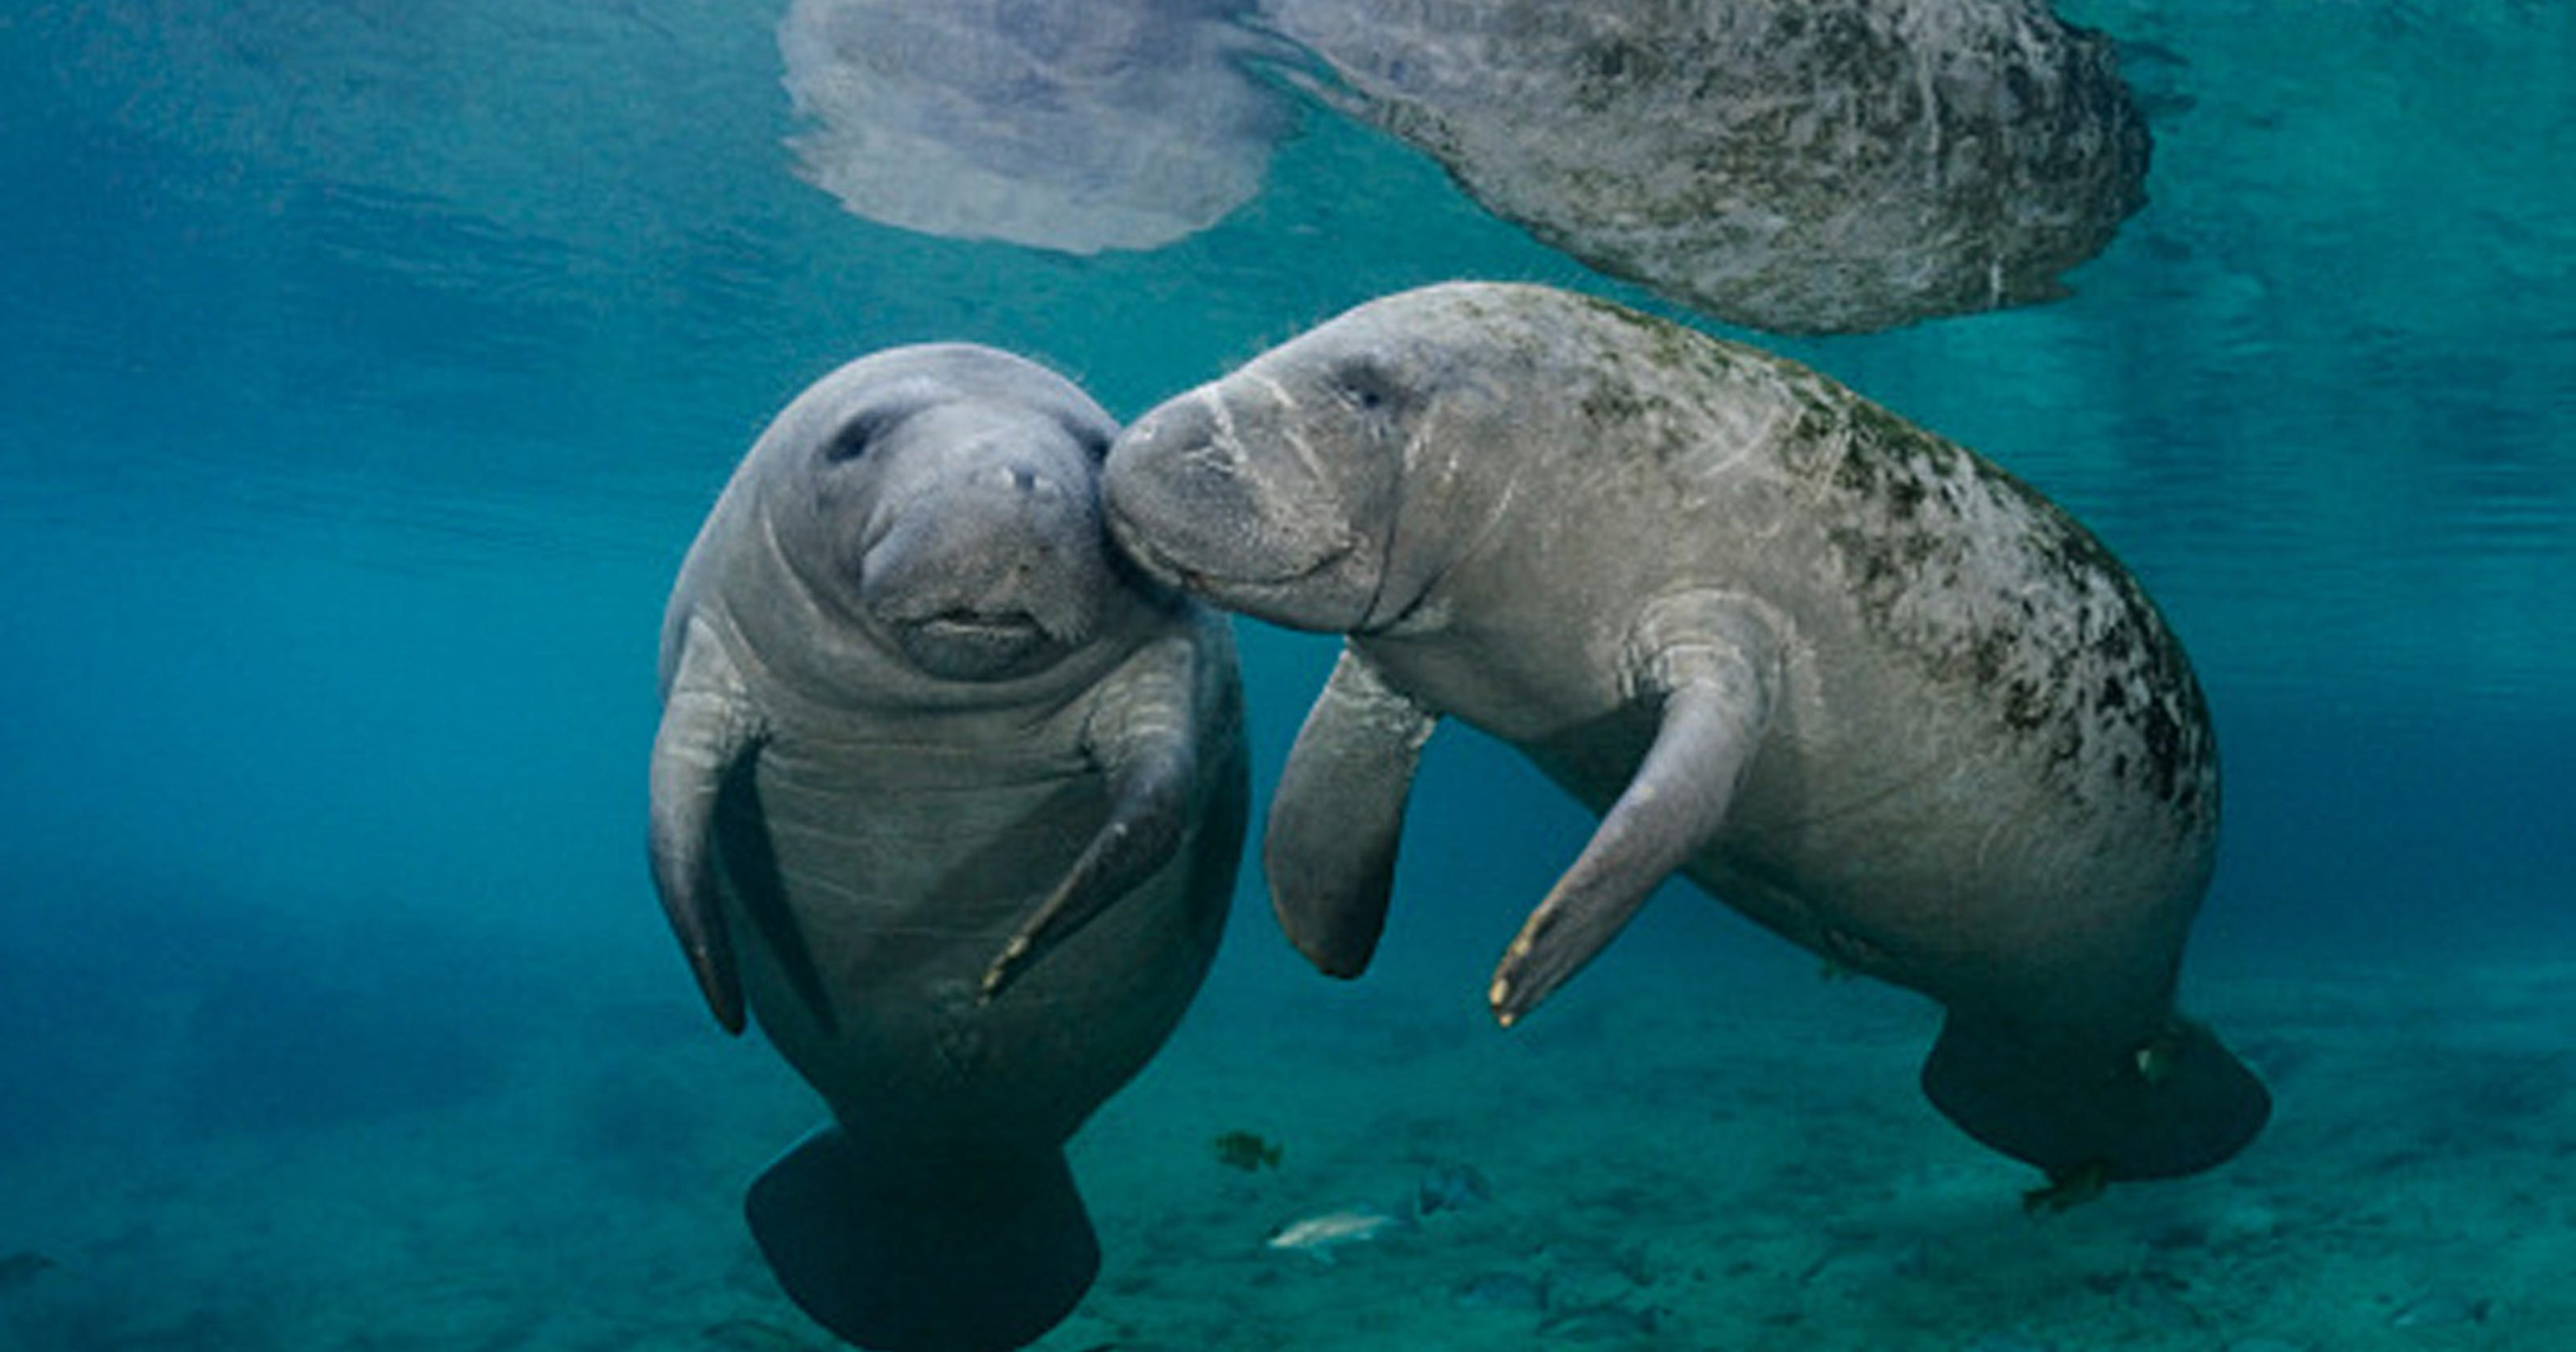 Florida red tide: Report manatees affected by toxic algae